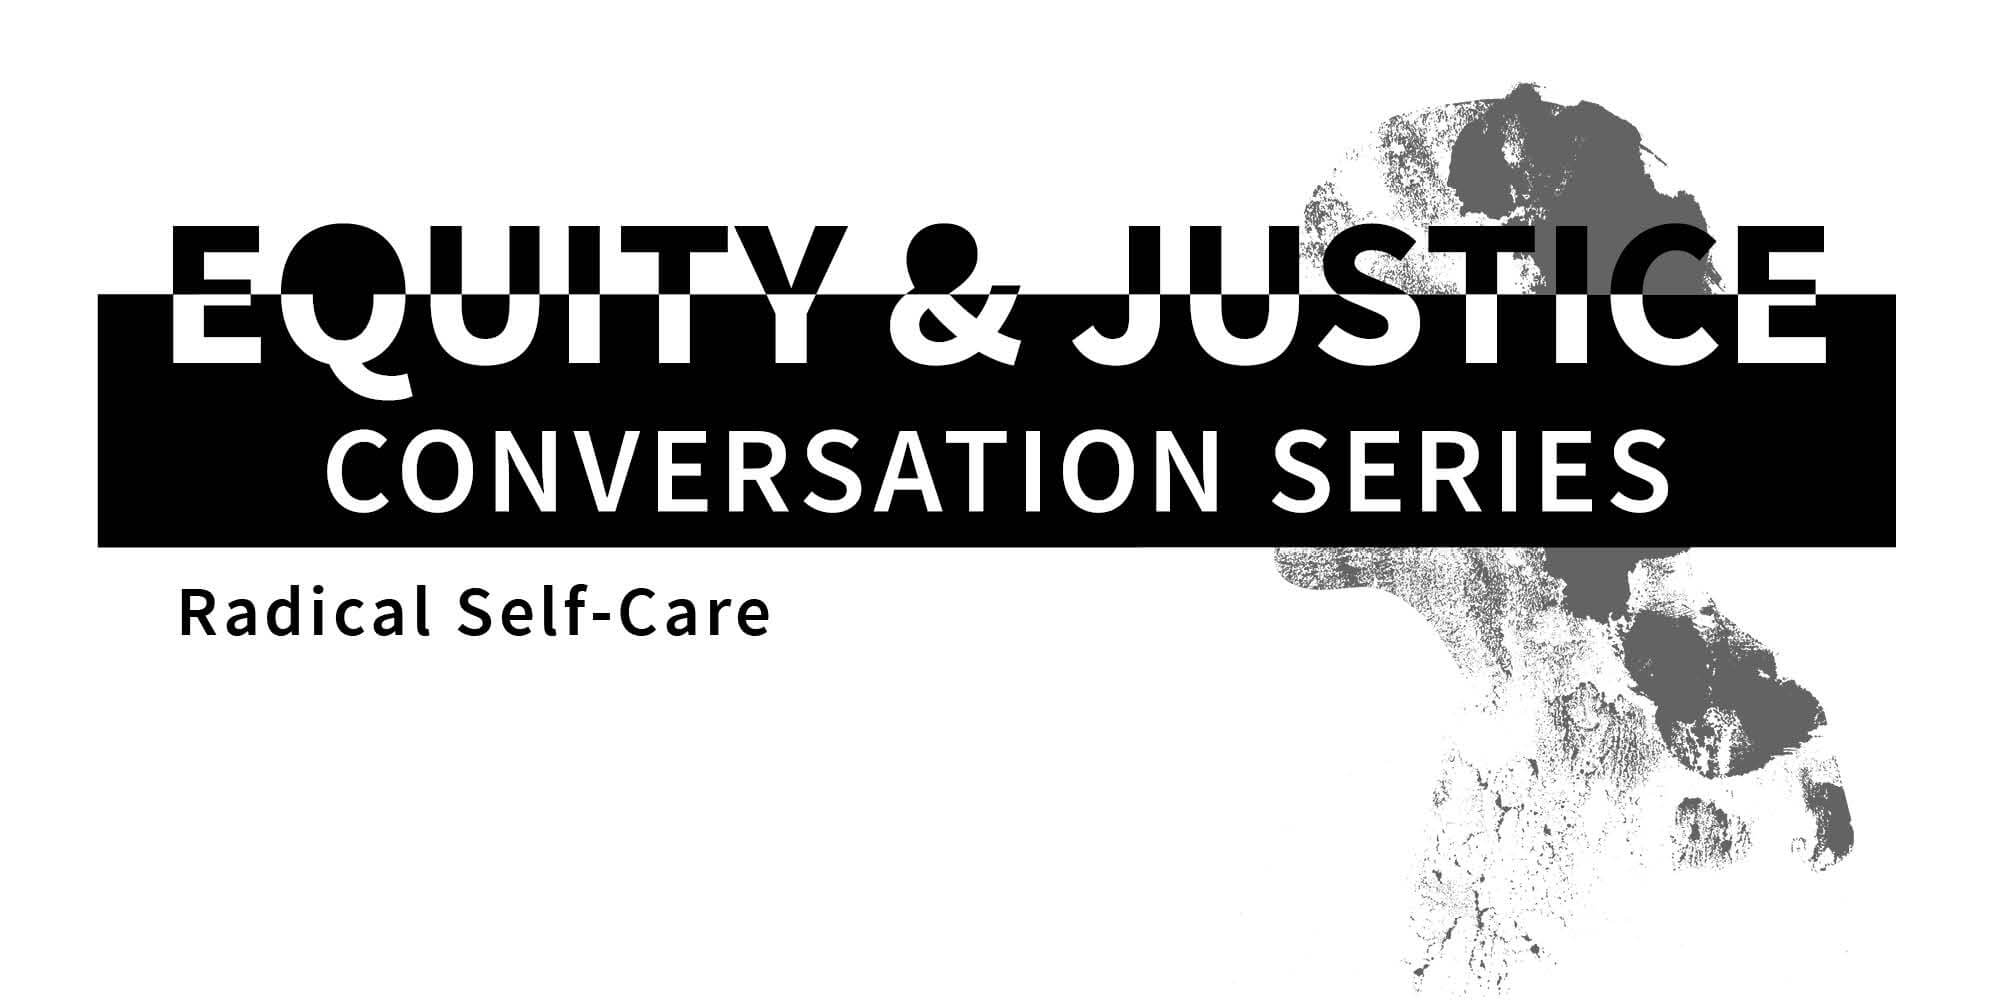 Equity & Justice Conversation Series: Radical Self-Care